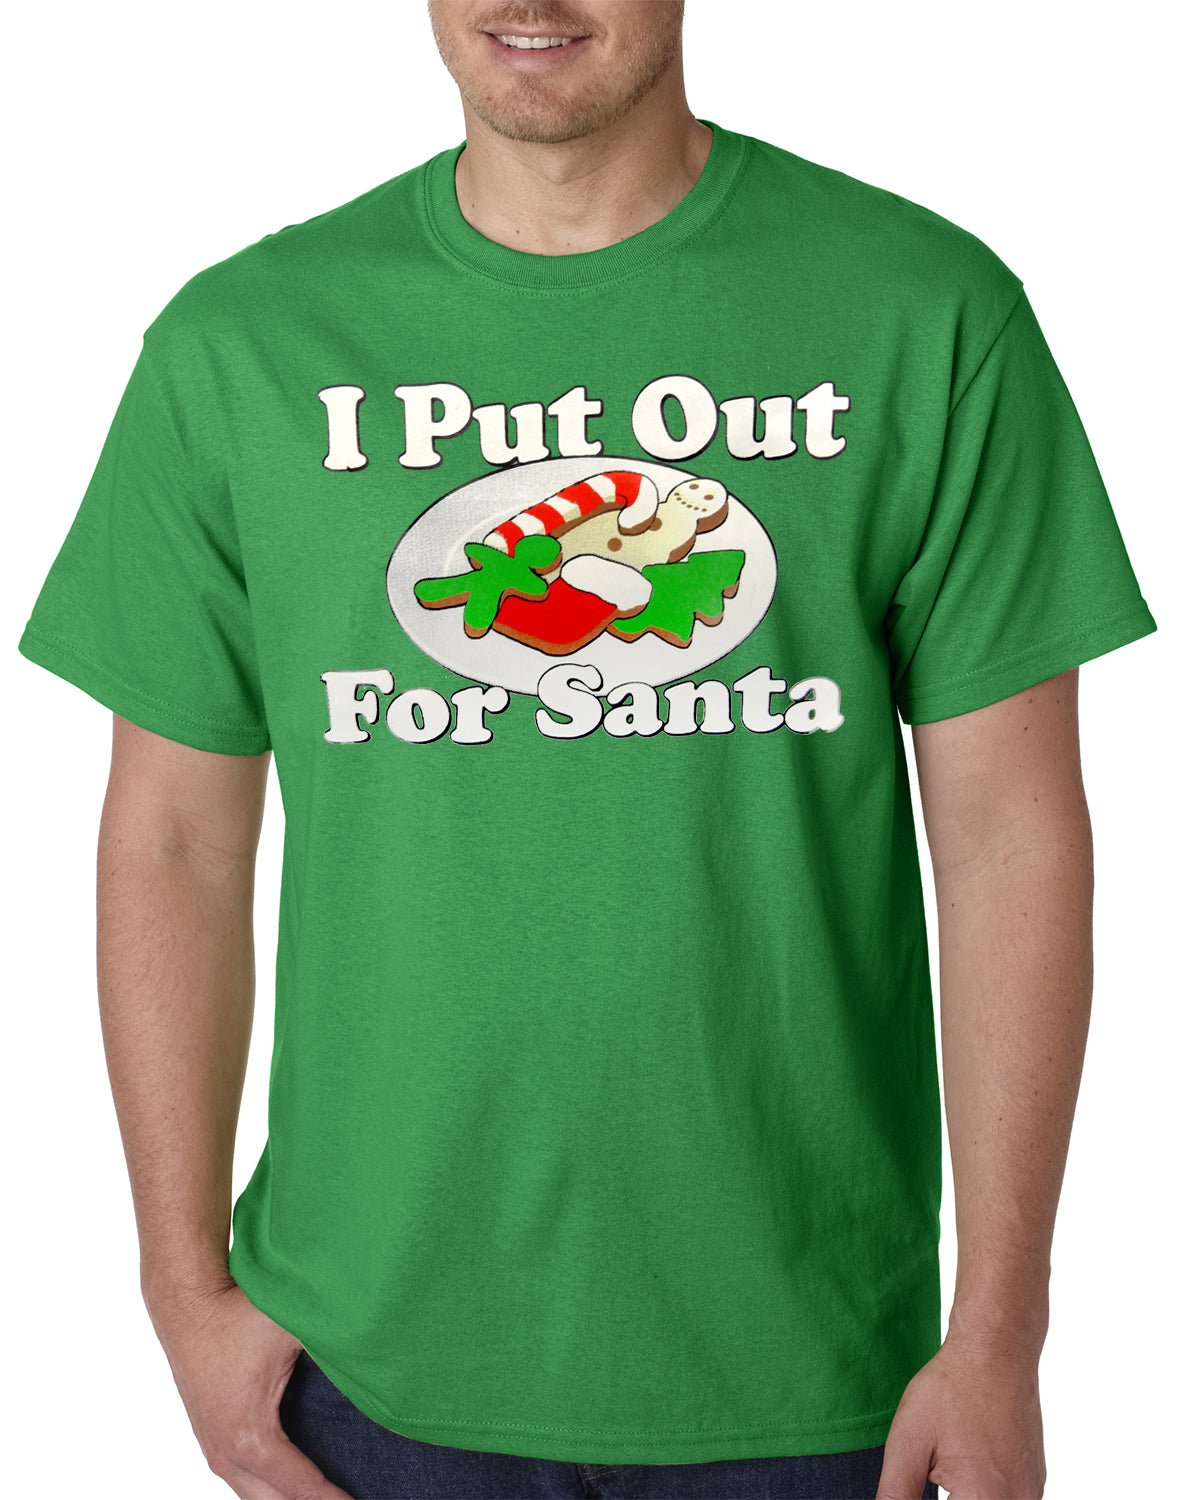 I Put Out For Santa Funny Mens T-shirt